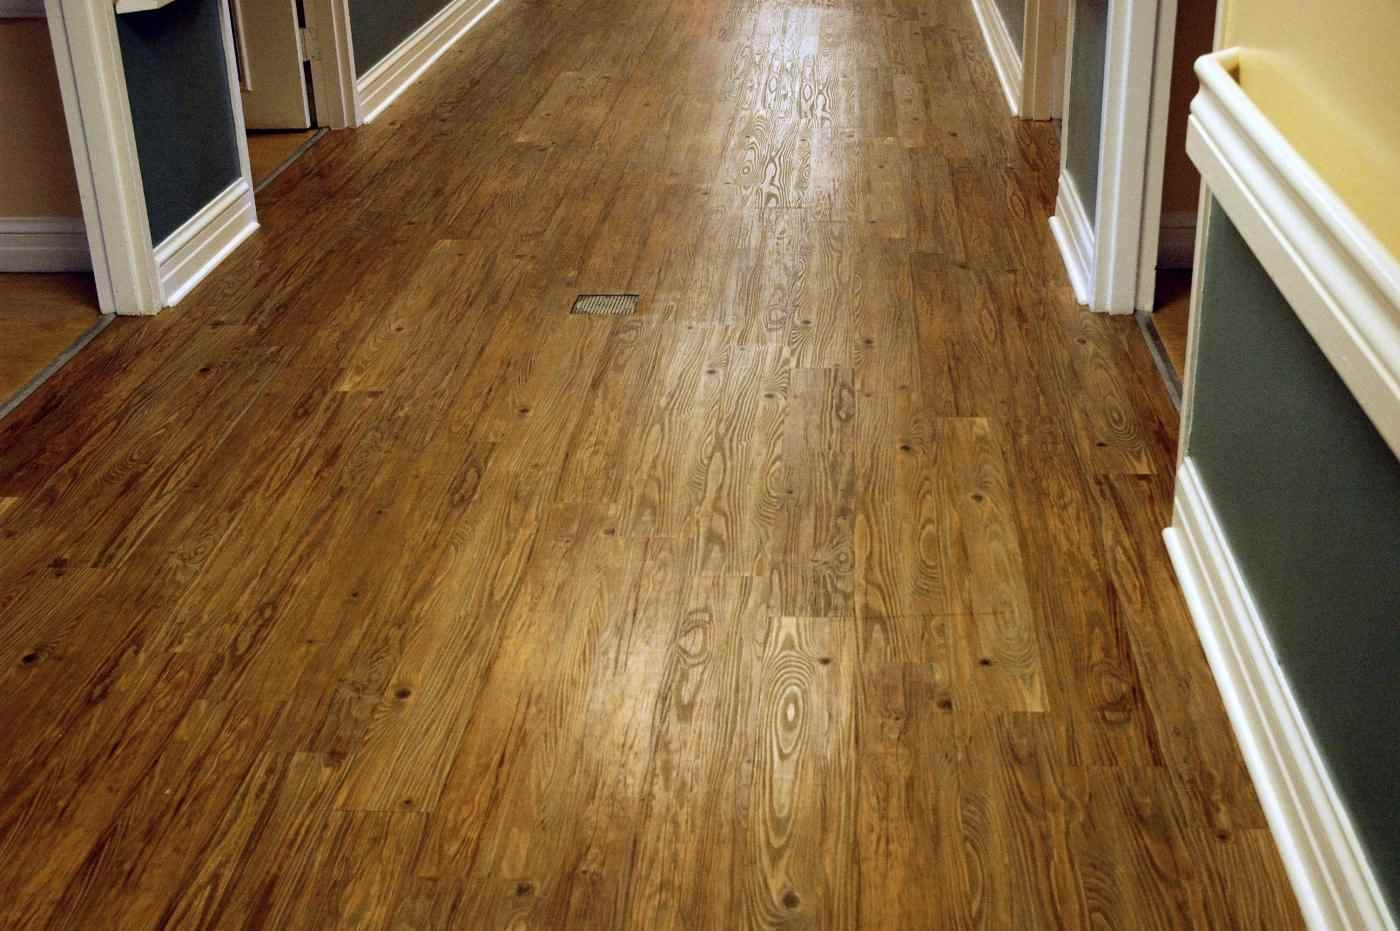 Wood Effect Vinyl Bathroom Flooring Wood Flooring